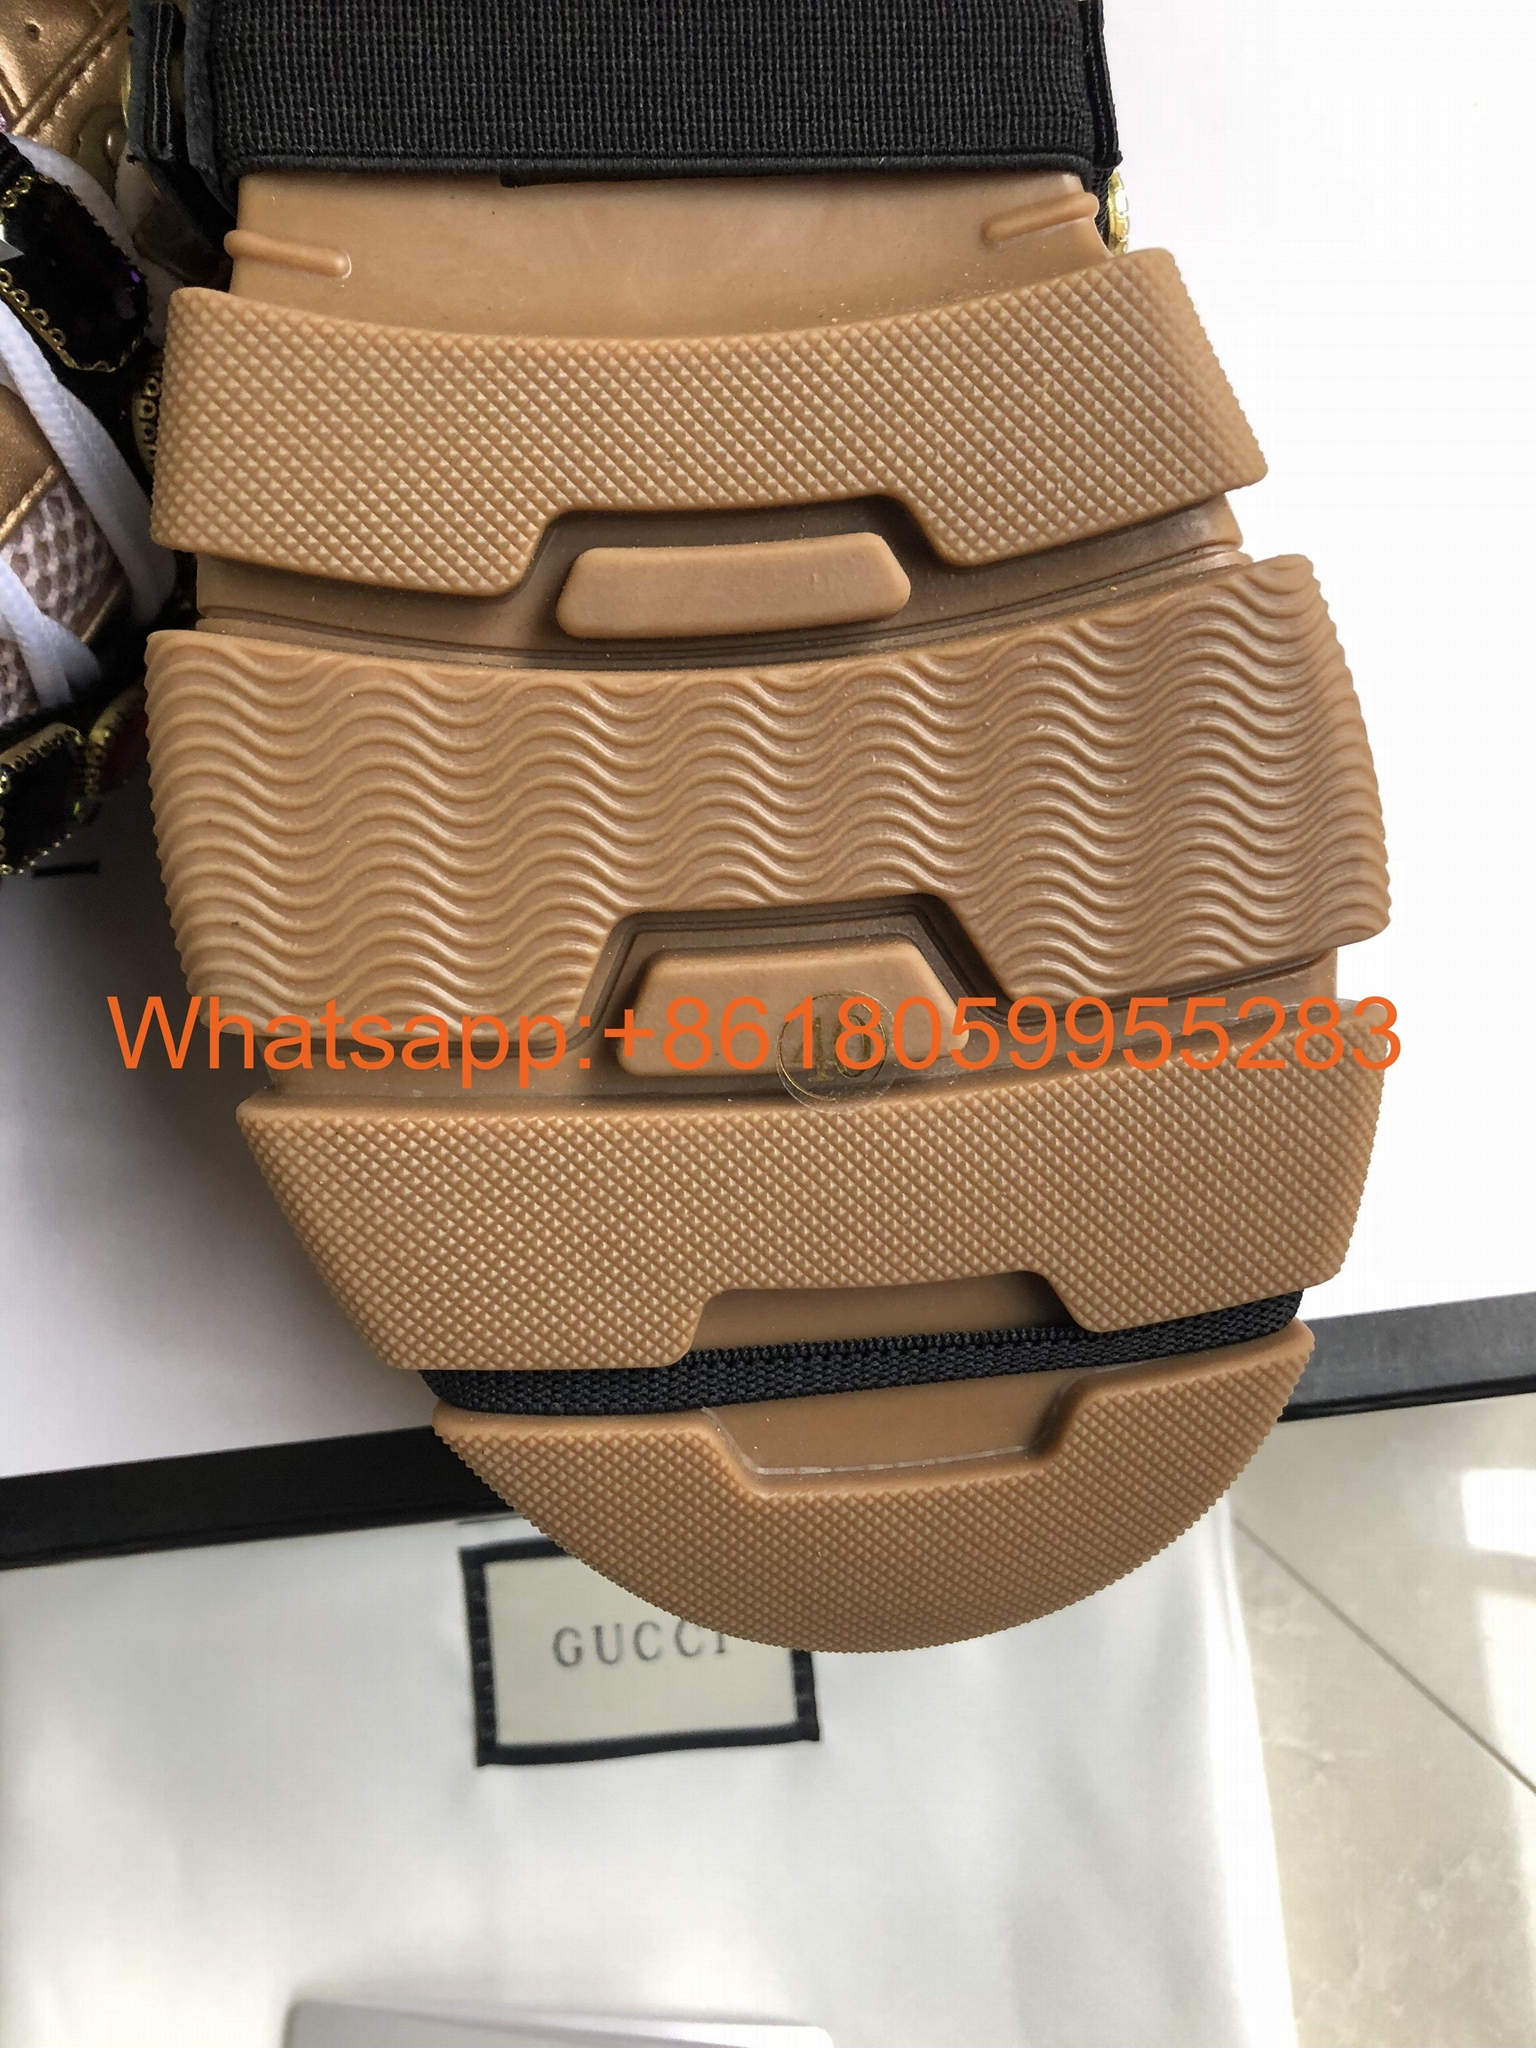 2019 Newest Gucci shoes men Gucci sneakers Wholesale women Gucci High heels sale